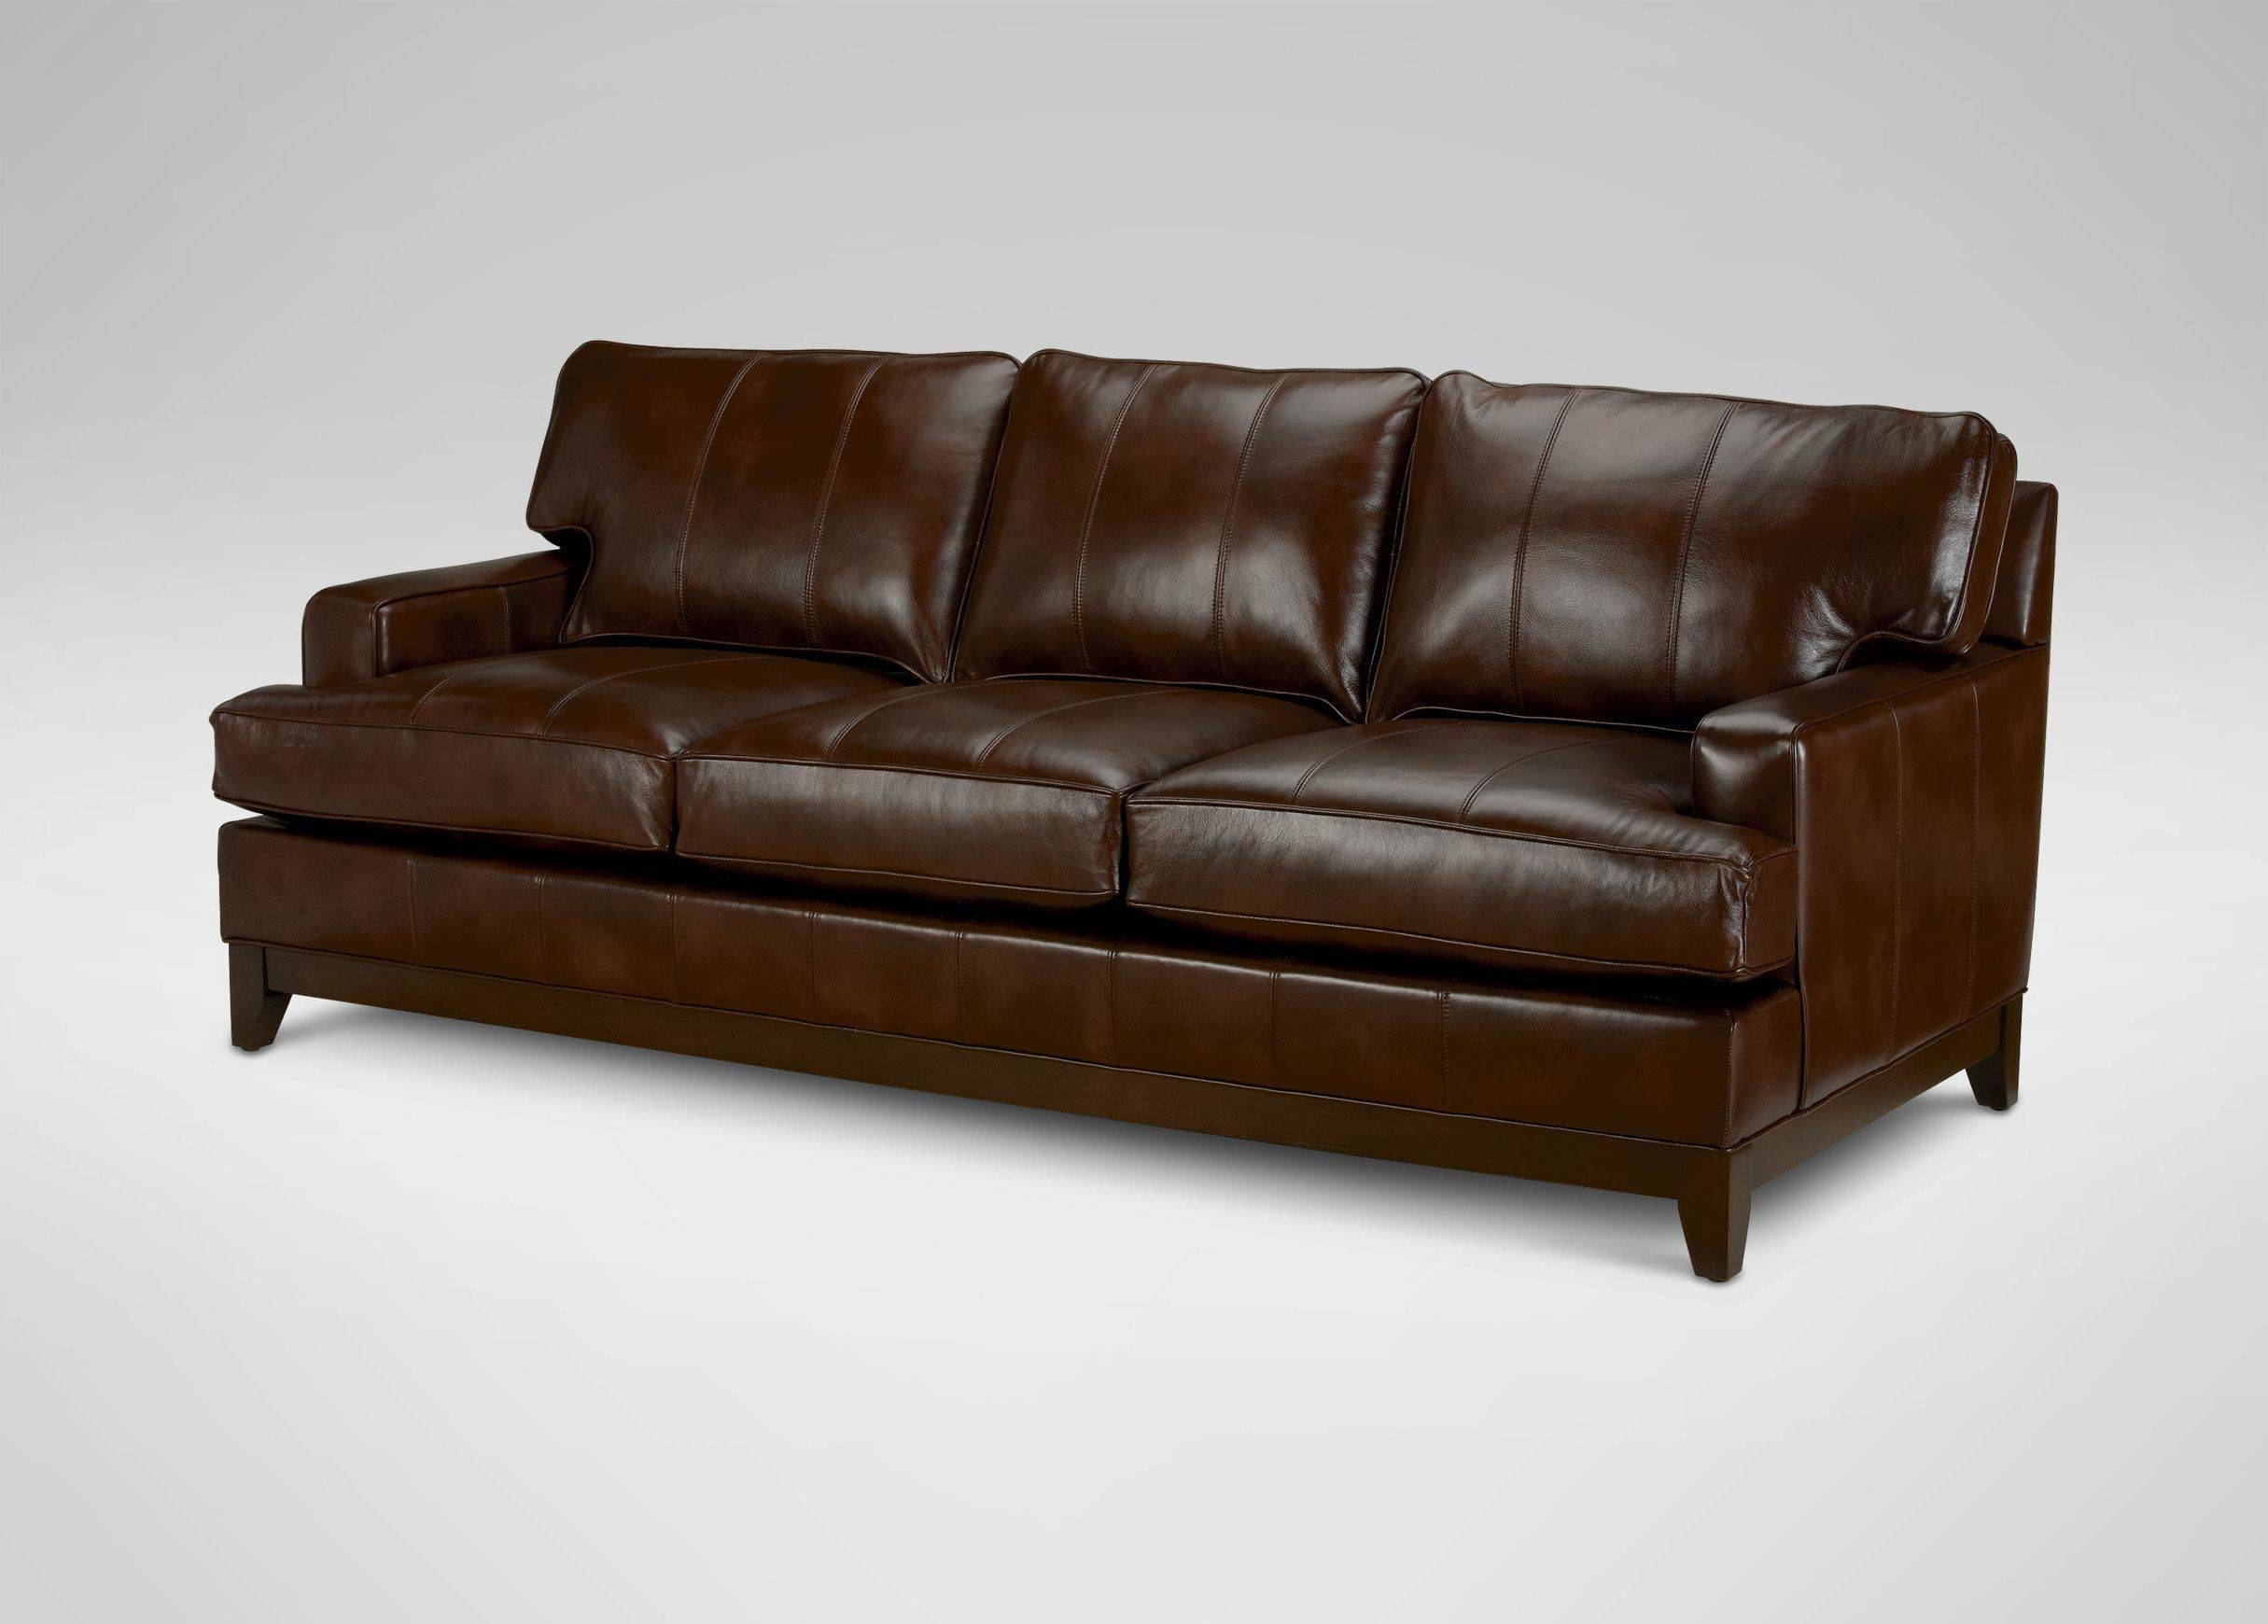 Furniture: Ethan Allen Leather Furniture For Excellent Living Room regarding Ethan Allen Chesterfield Sofas (Image 8 of 15)